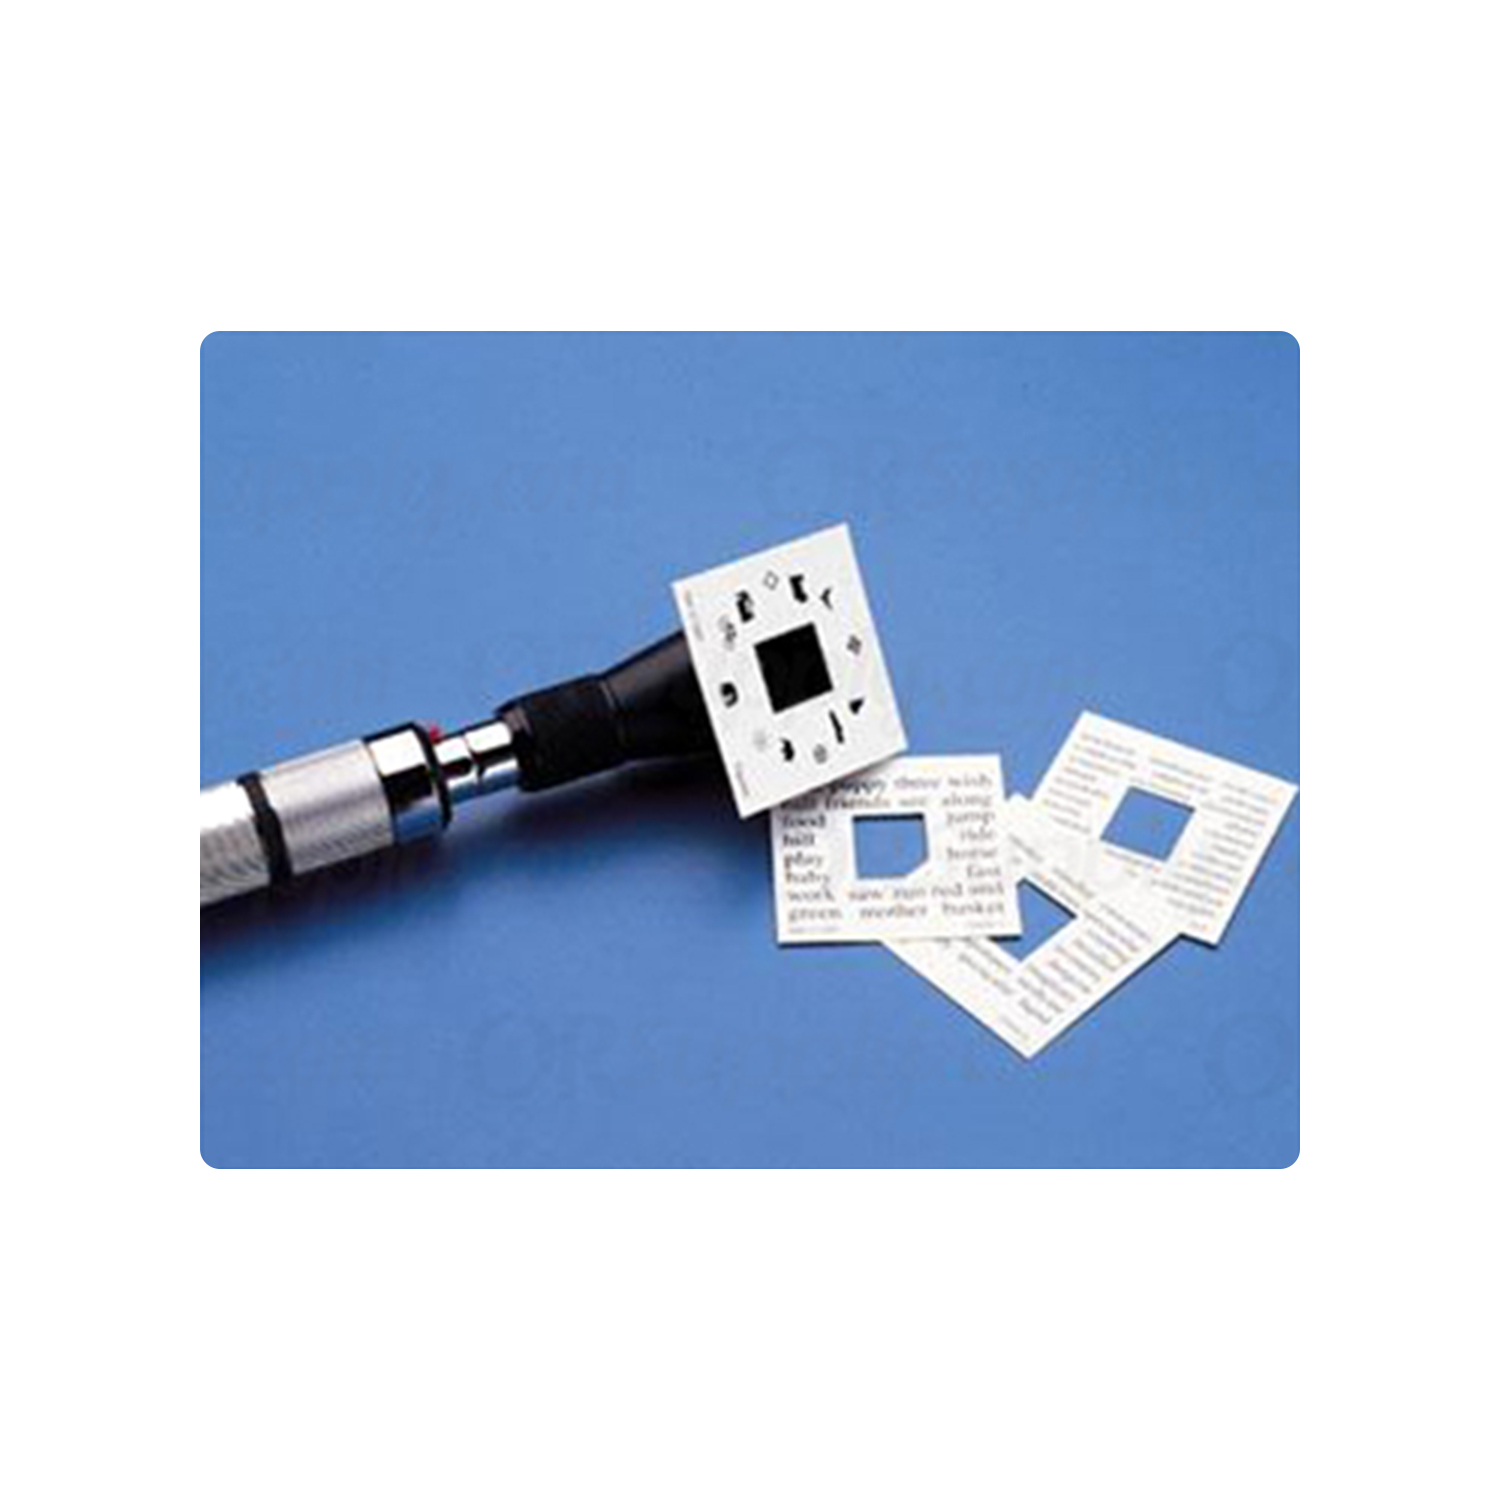 Welch Allyn Fixation Cards